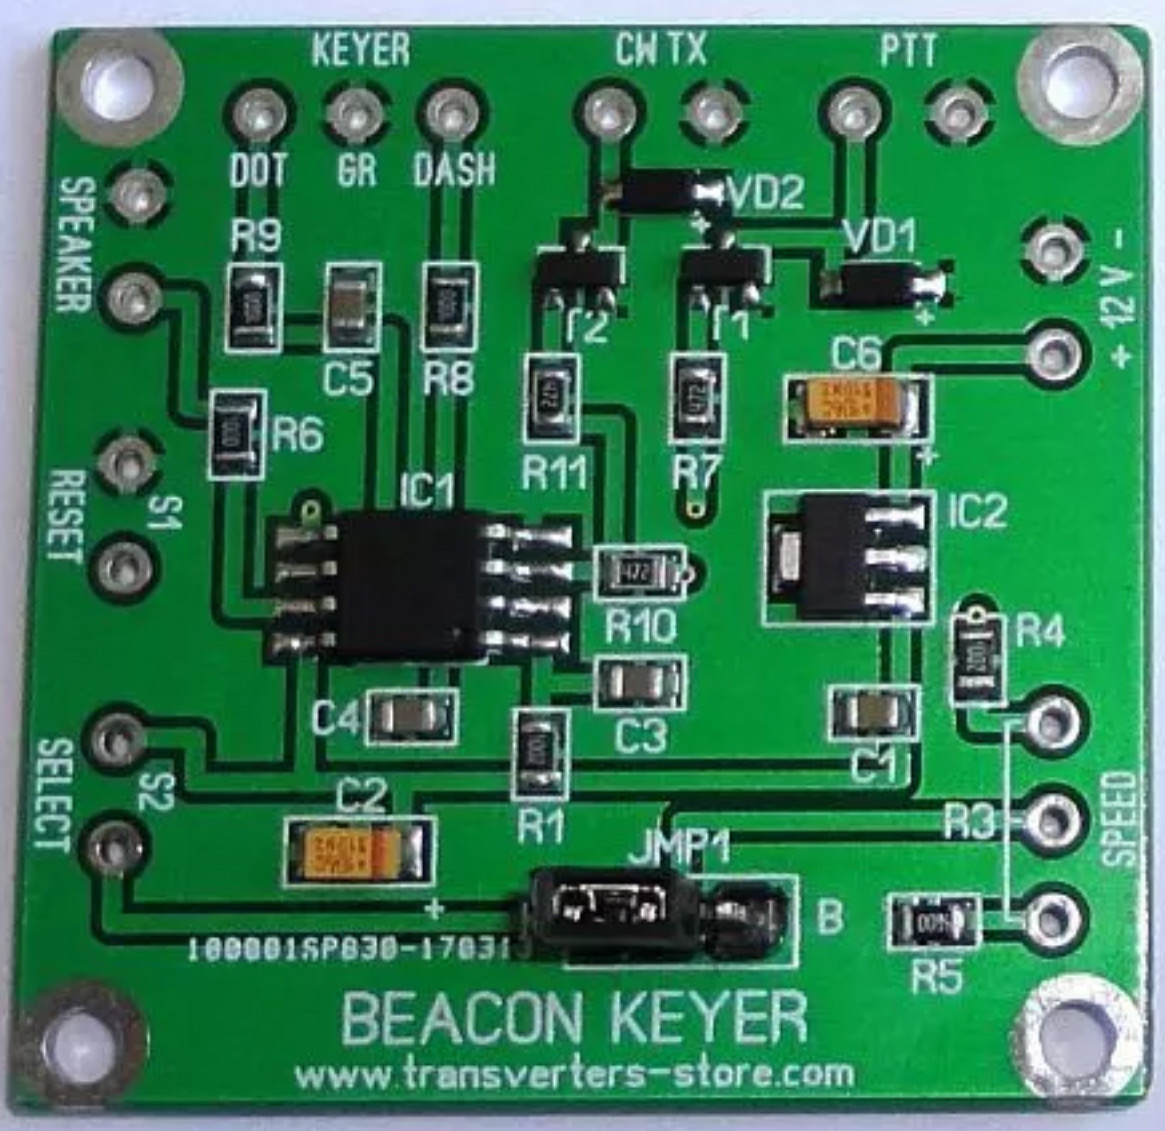 Beacon Keyer